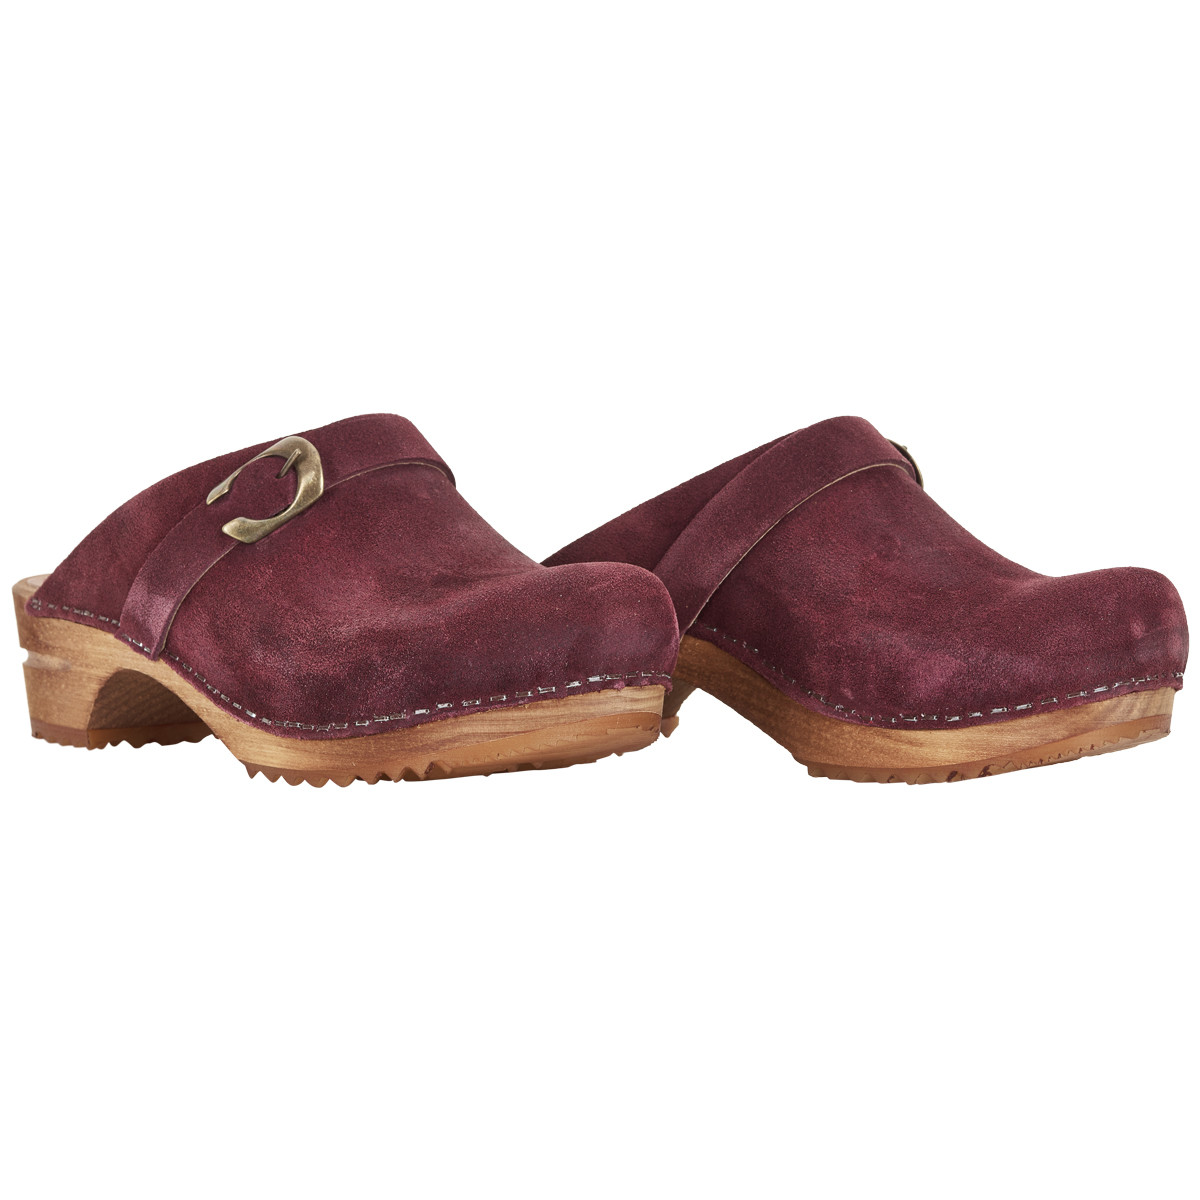 Sanita Hedi Clogs 457190 47